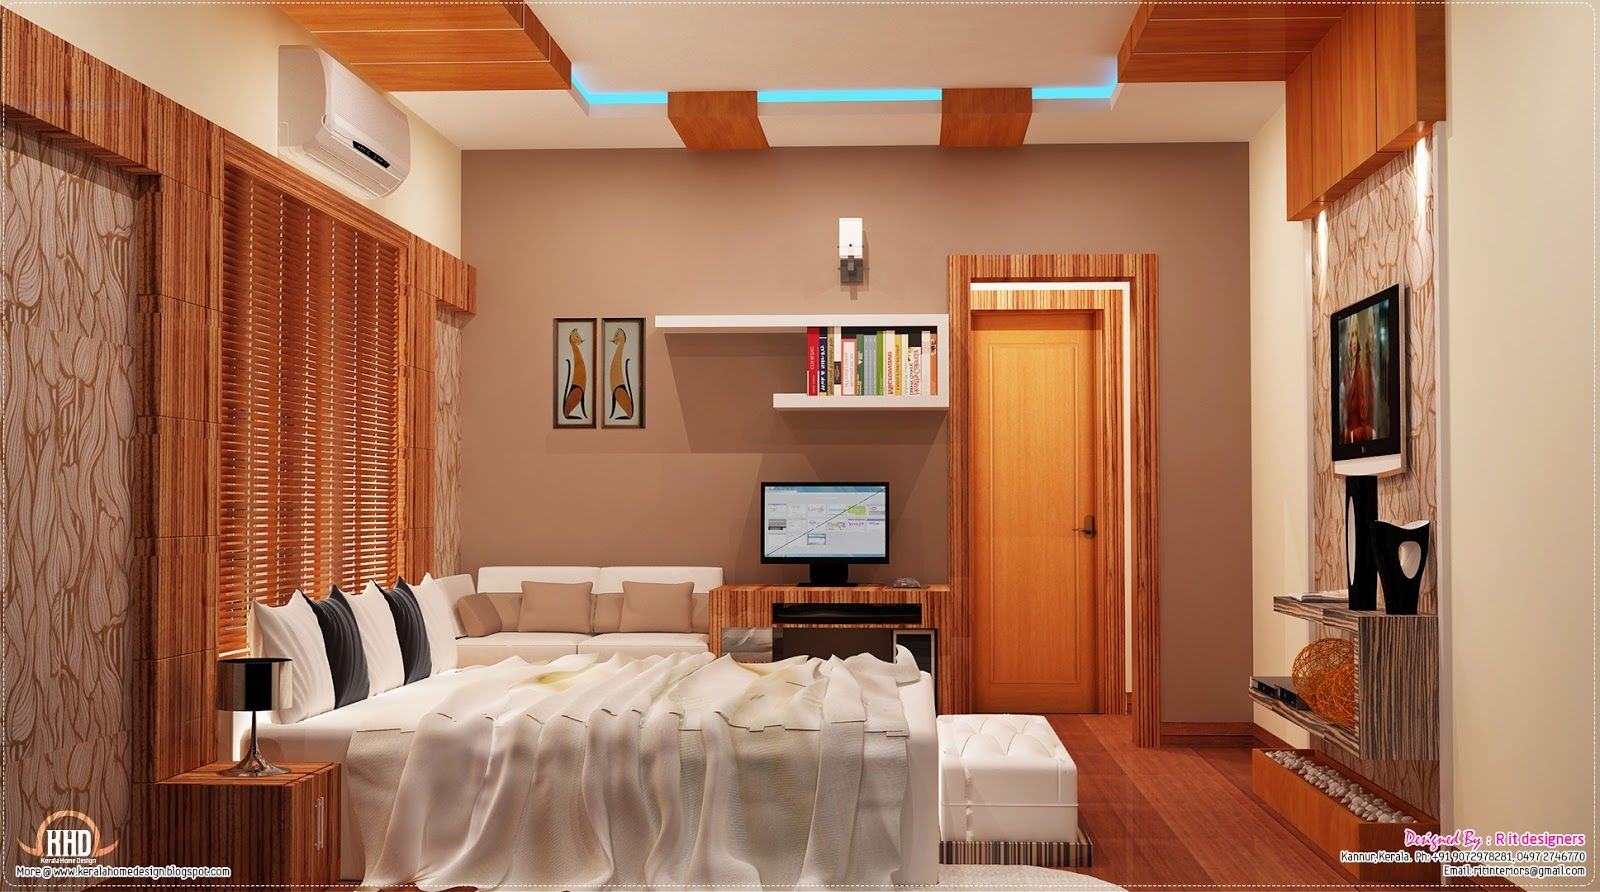 2700 Sq Feet Kerala Home With Interior Designs Home Interior